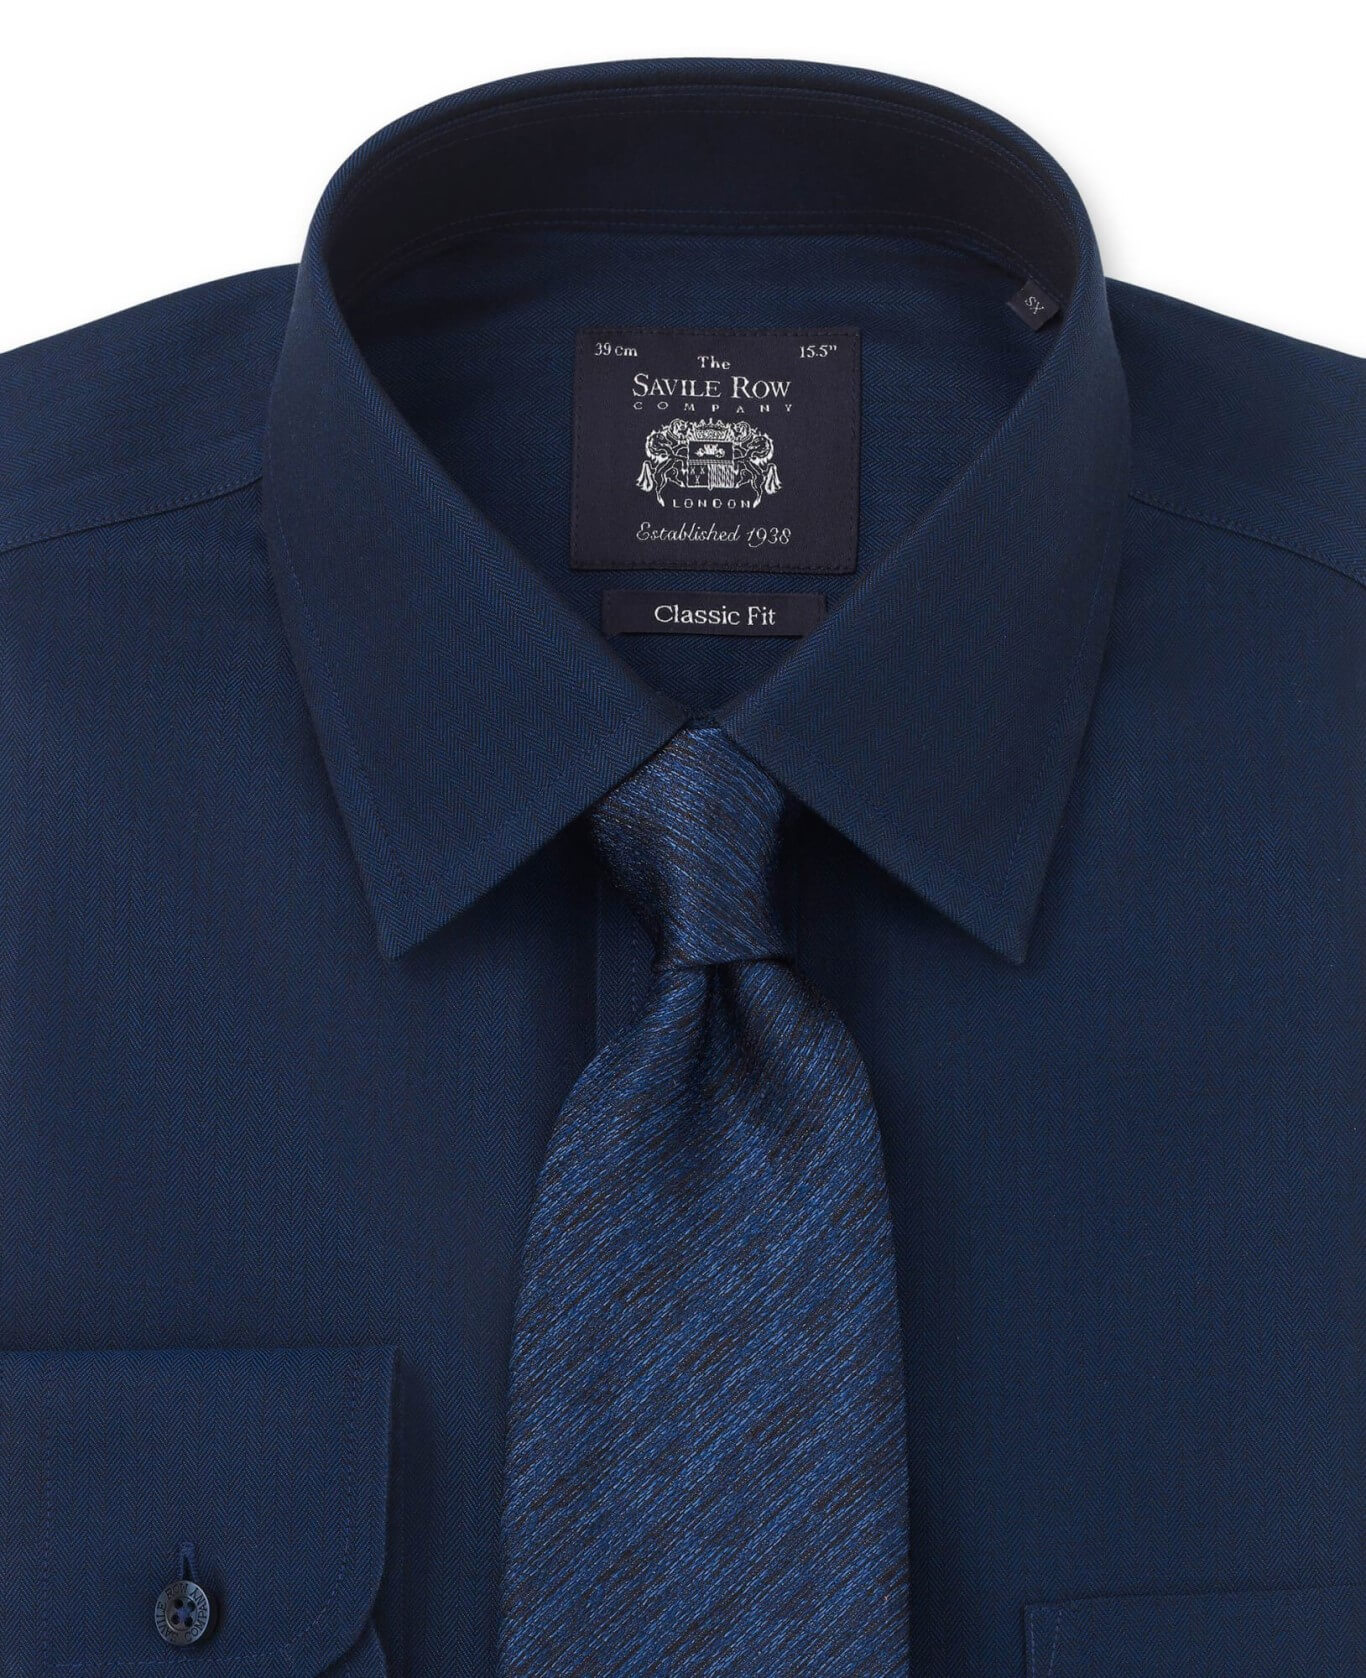 NON-IRON DARK NAVY HERRINGBONE CLASSIC FIT SHIRT – SINGLE CUFF-962NAV